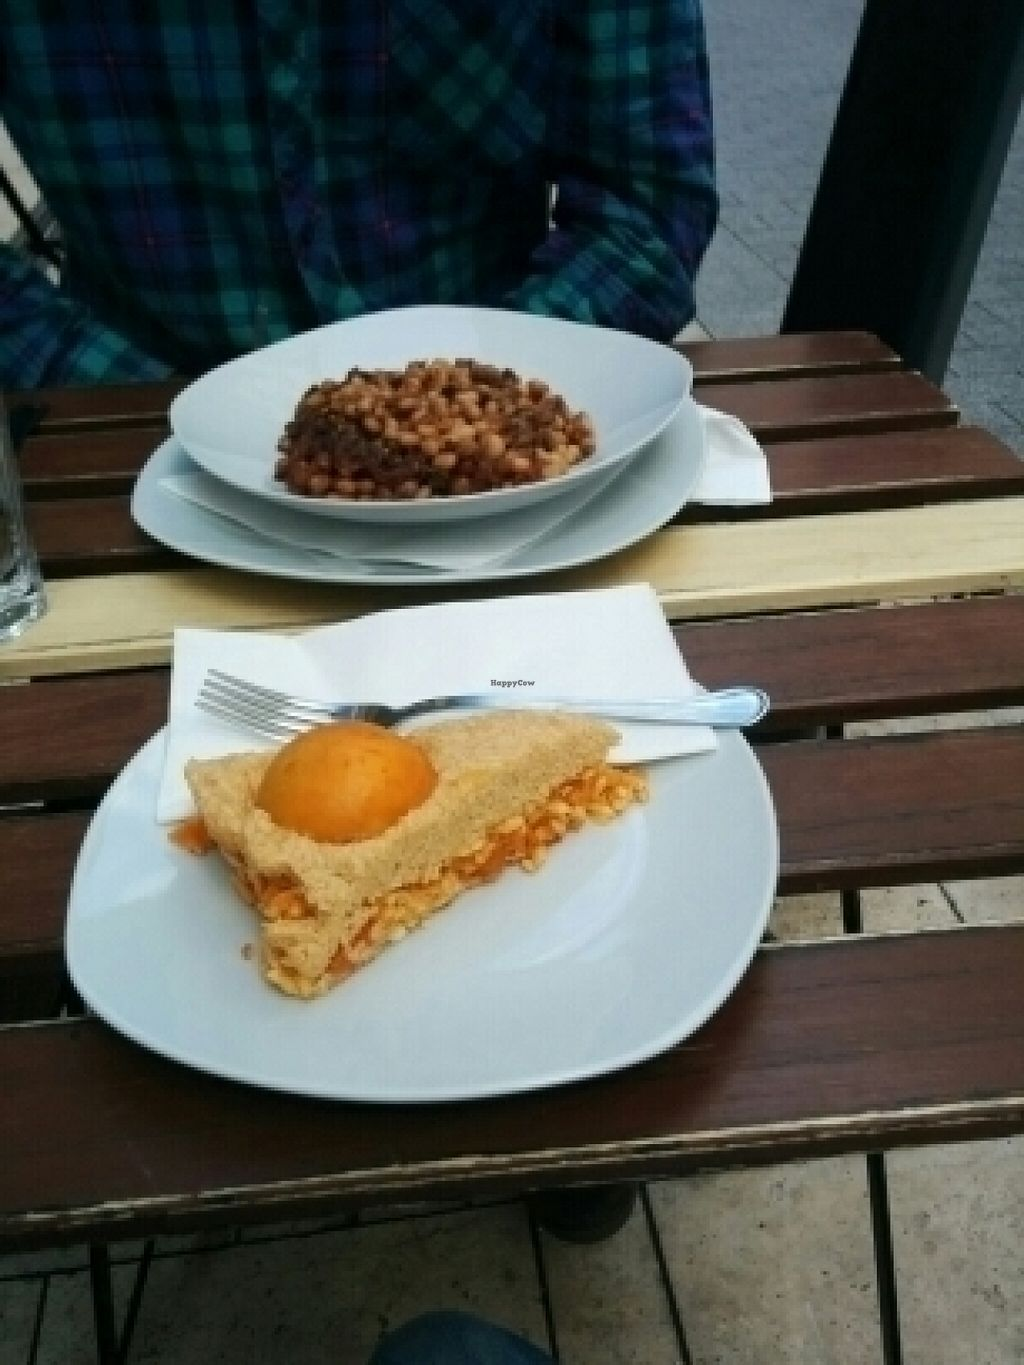 "Photo of CLOSED: CsendesM Vegan Bistro  by <a href=""/members/profile/AinoPerttunen"">AinoPerttunen</a> <br/>Apricot cake and the main course <br/> July 14, 2016  - <a href='/contact/abuse/image/62674/159874'>Report</a>"